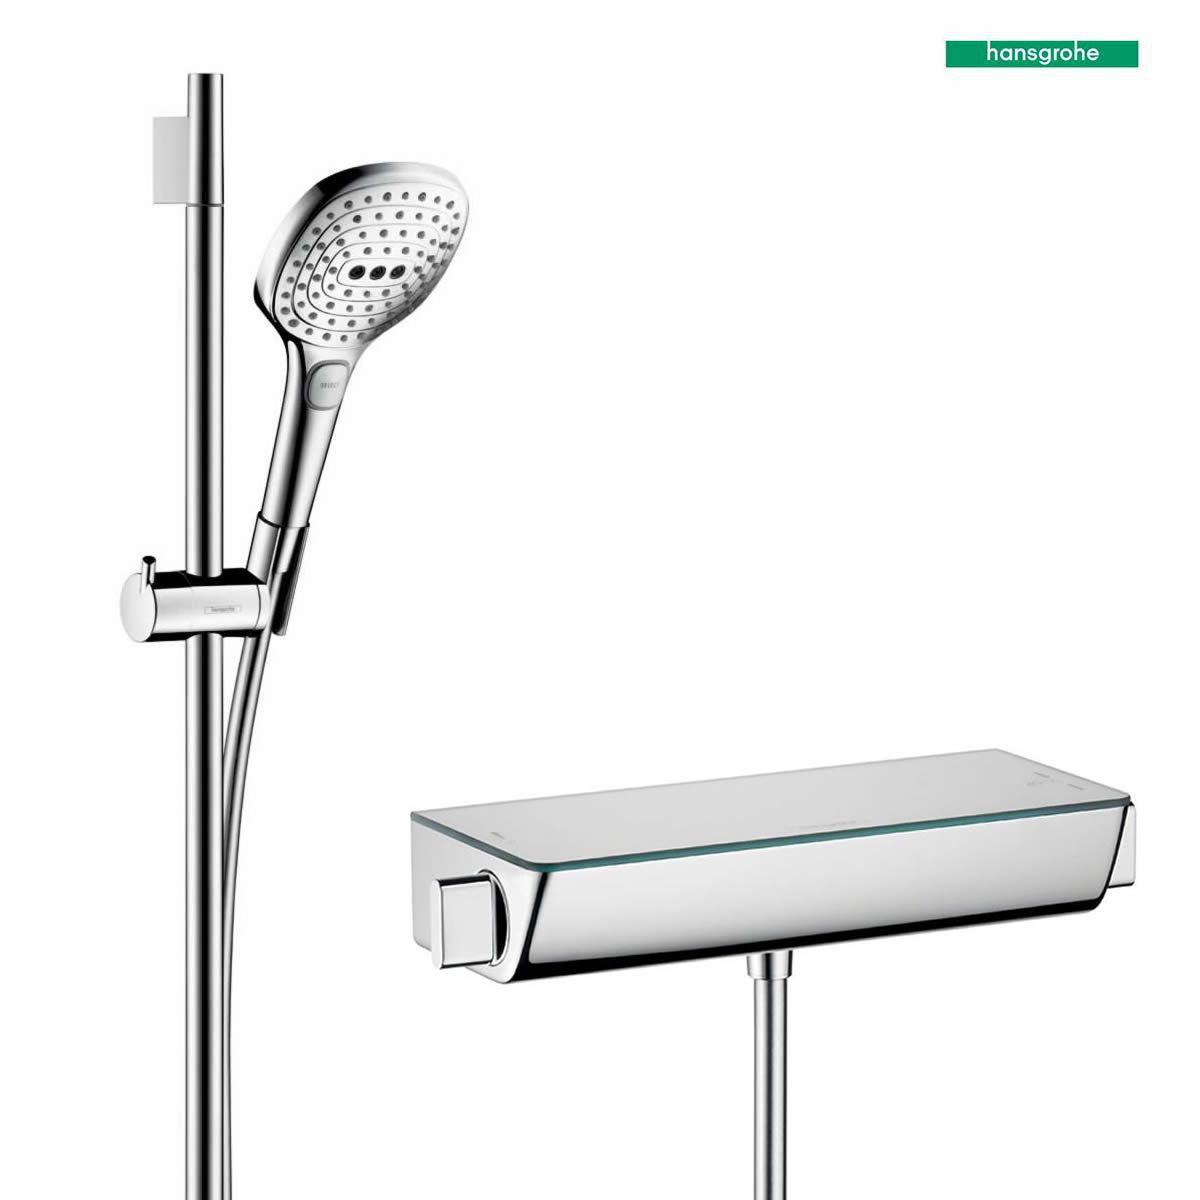 Hansgrohe. Hansgrohe Eshowersys E Shower System With Handshower Set ...